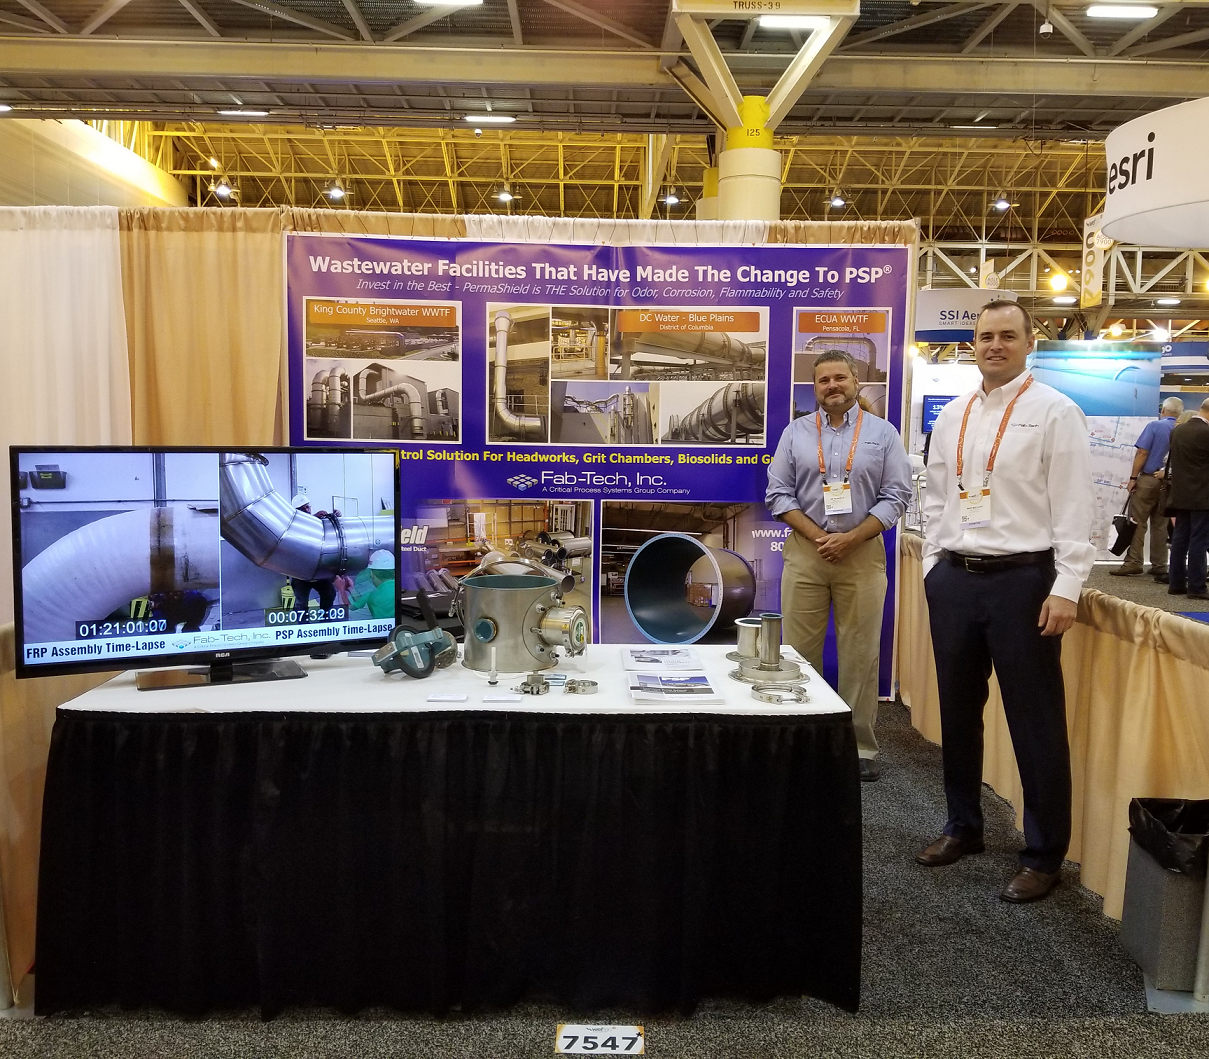 Fab-Tech at WEFTEC 2018, Booth 7547